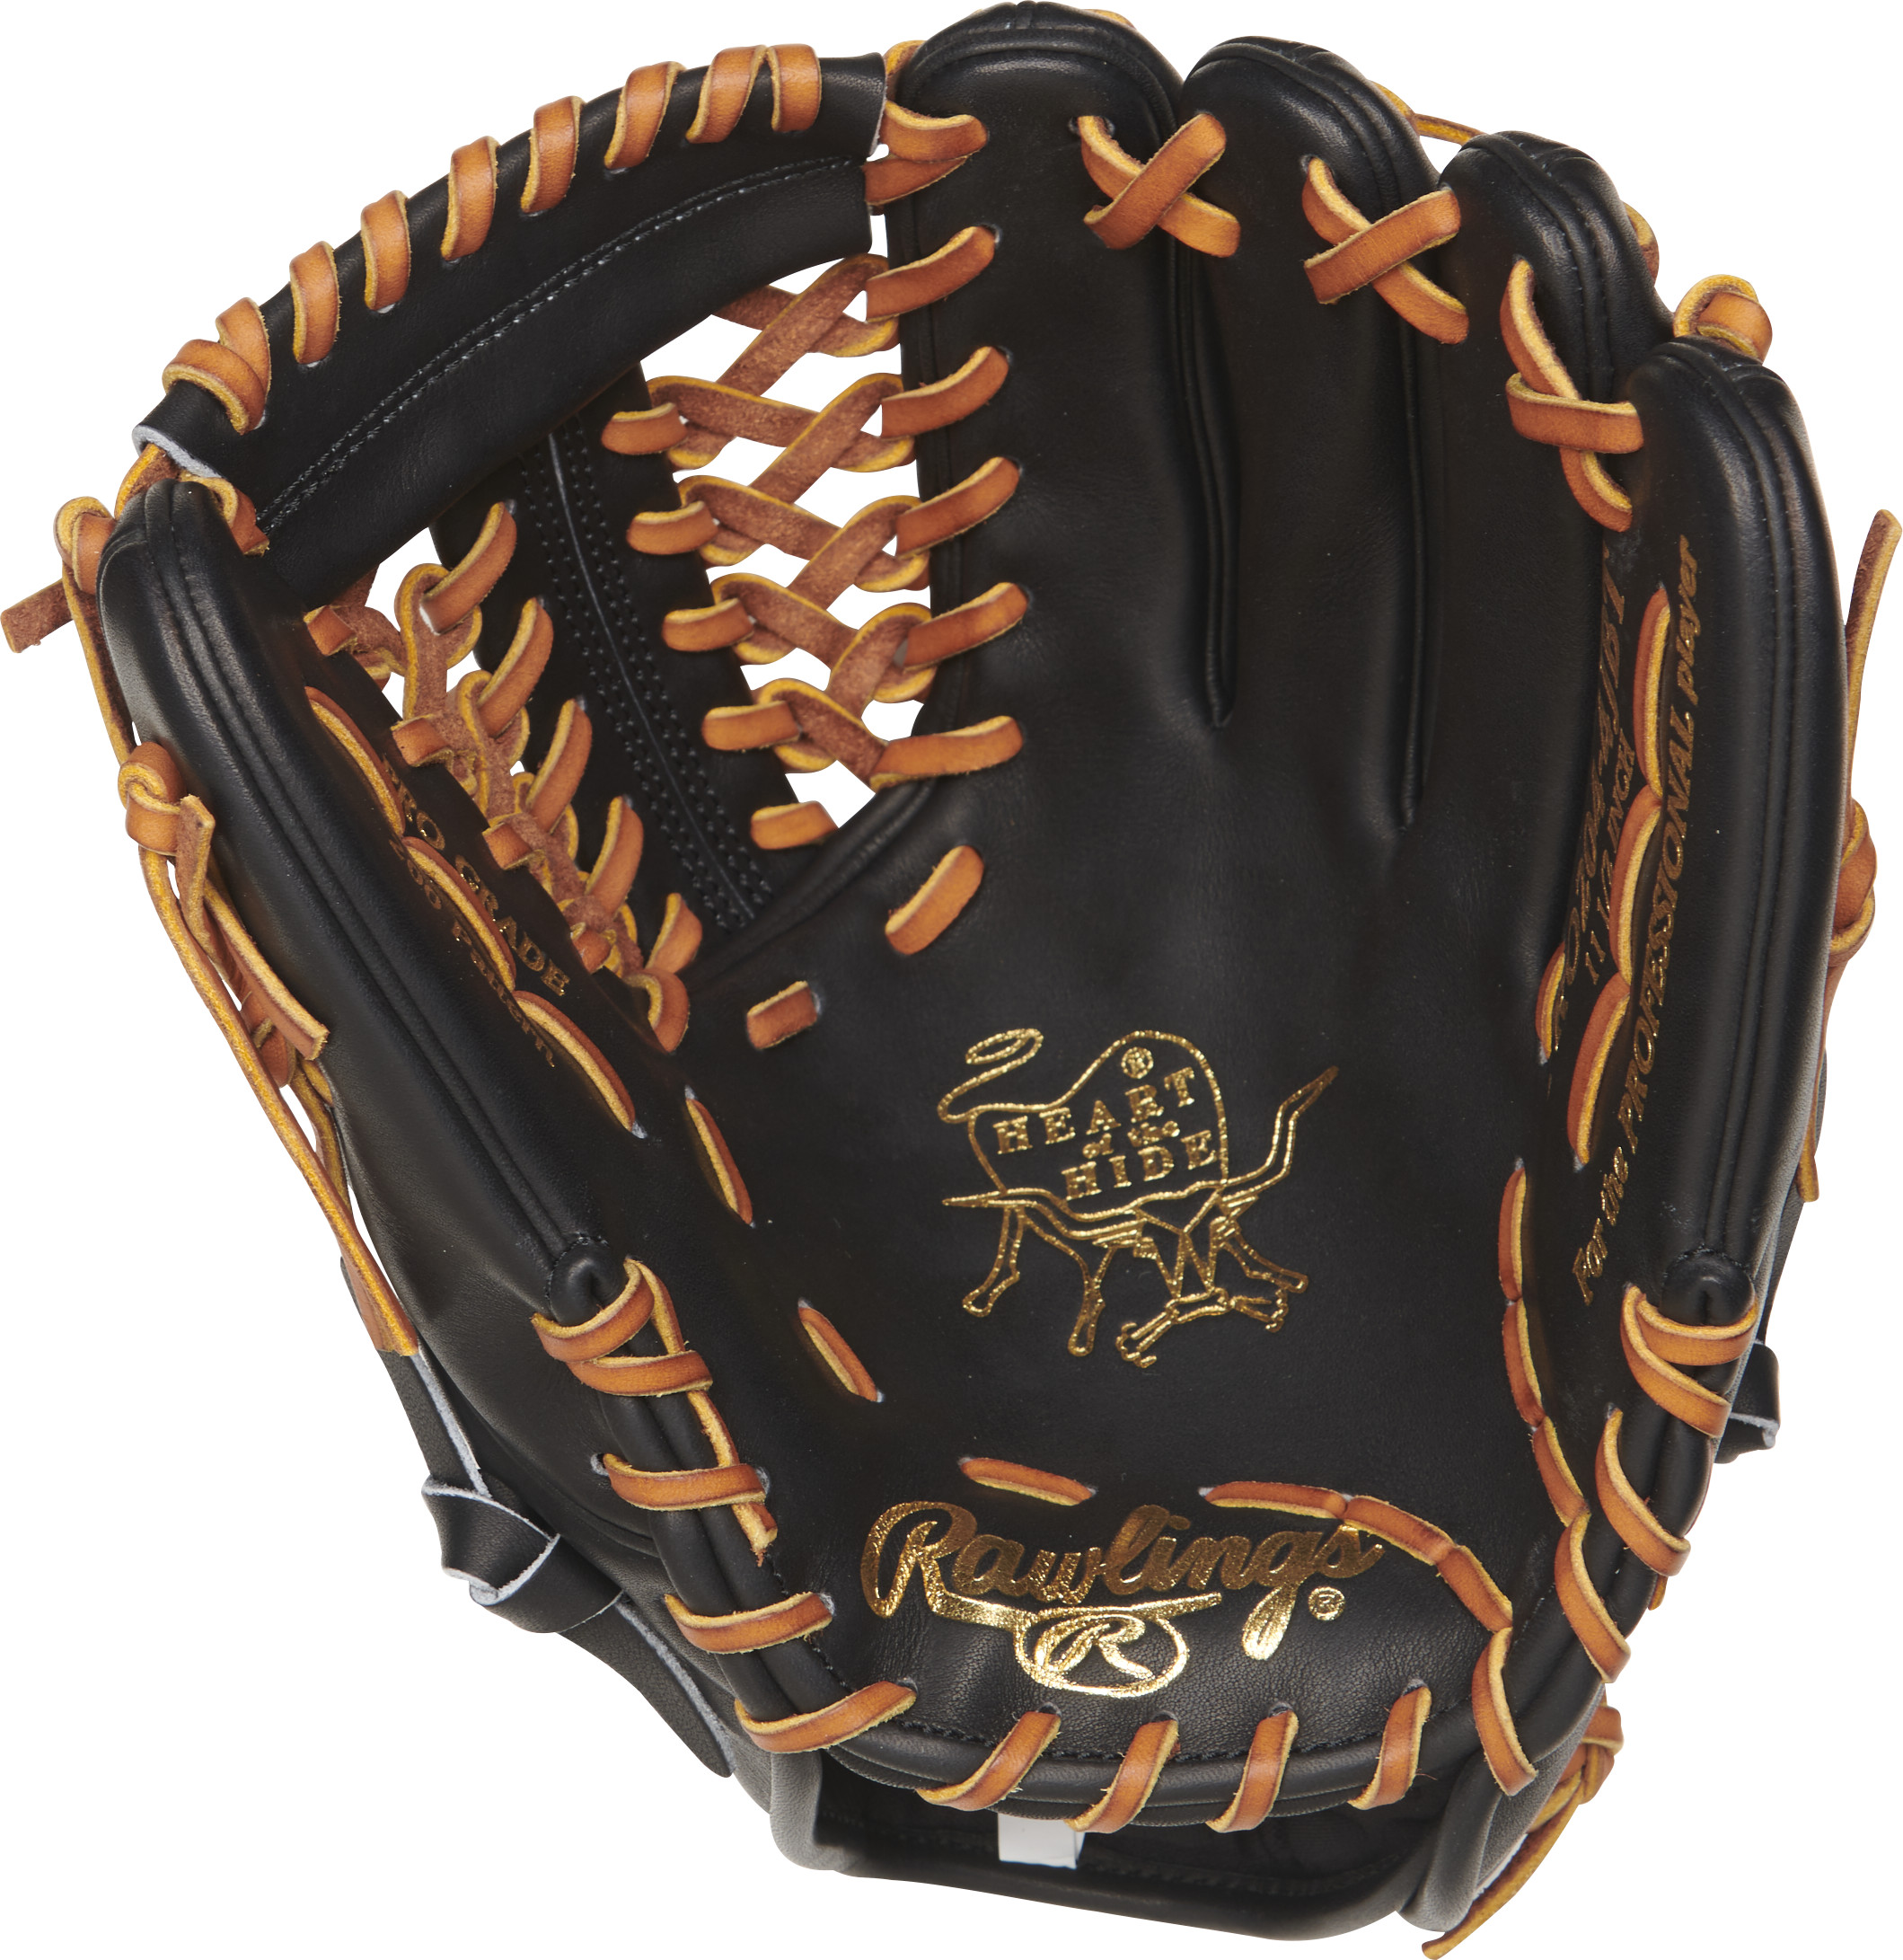 http://www.bestbatdeals.com/images/gloves/rawlings/PRO204-4JBT-1.jpg